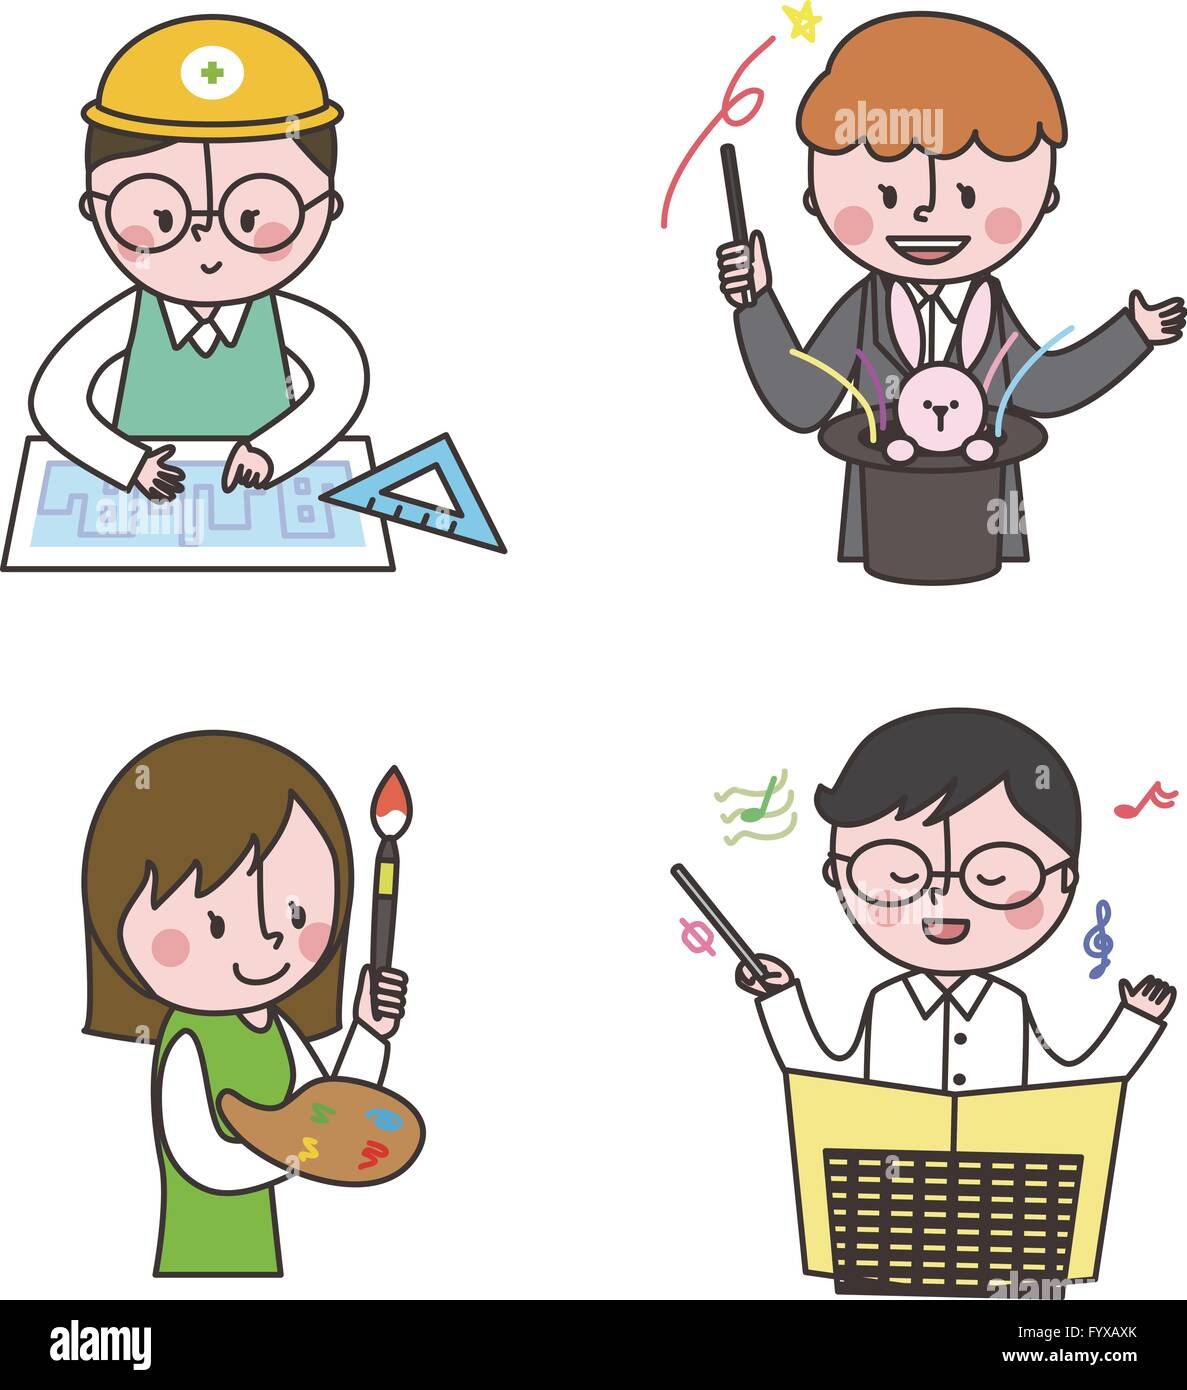 Job emoticons 017 - Stock Image